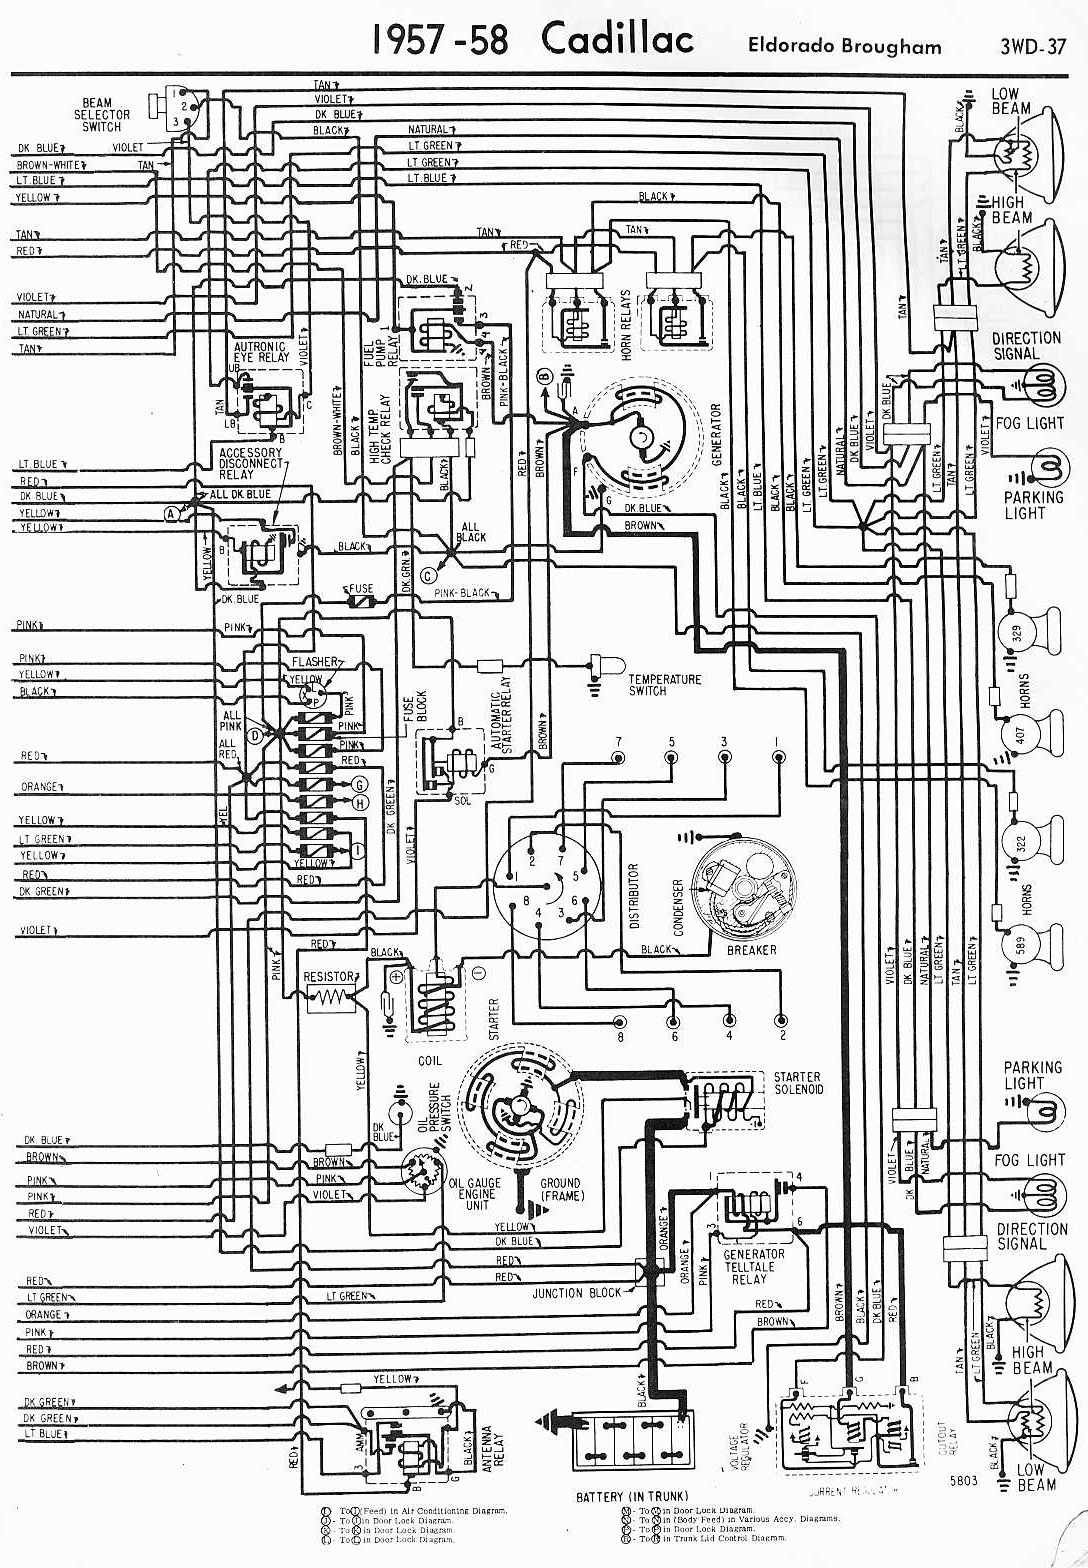 wiring diagram also 1995 cadillac fleetwood fuse box diagram on gm rh  vsetop co 2000 Fleetwood